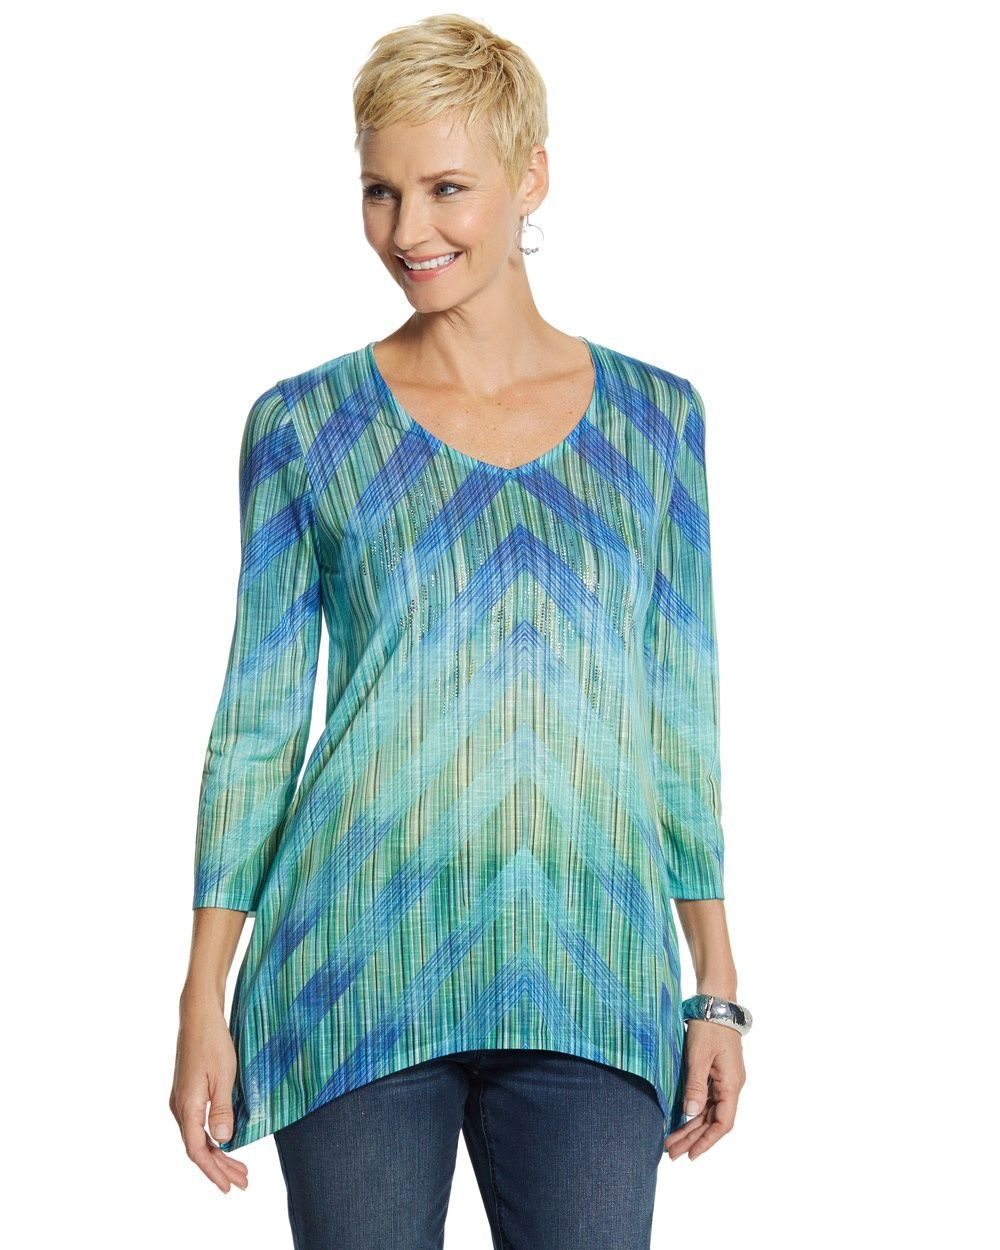 4c429375513 Chico's Women's Sally Ombre Stripe Knit Top   Products   Striped ...